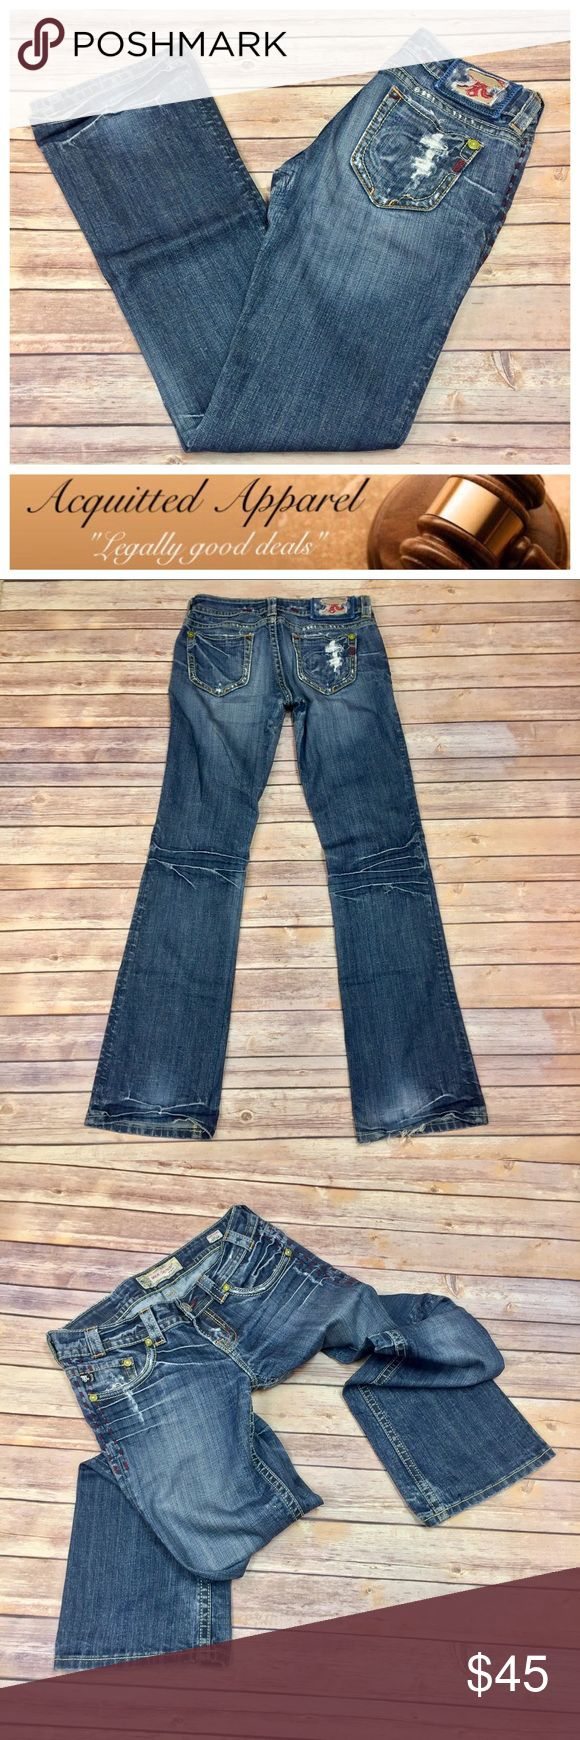 "(MEK) Capetown Bootcut Jeans 34"" Inseam (MEK) Capetown Bootcut Jeans 34"" Inseam Long length MEK Capetown Bootcut Jeans with distressing in like new condition. - Size 27 - 34"" inseam - 98% cotton 2% Spandex - 7"" Rise MEK Jeans Boot Cut"